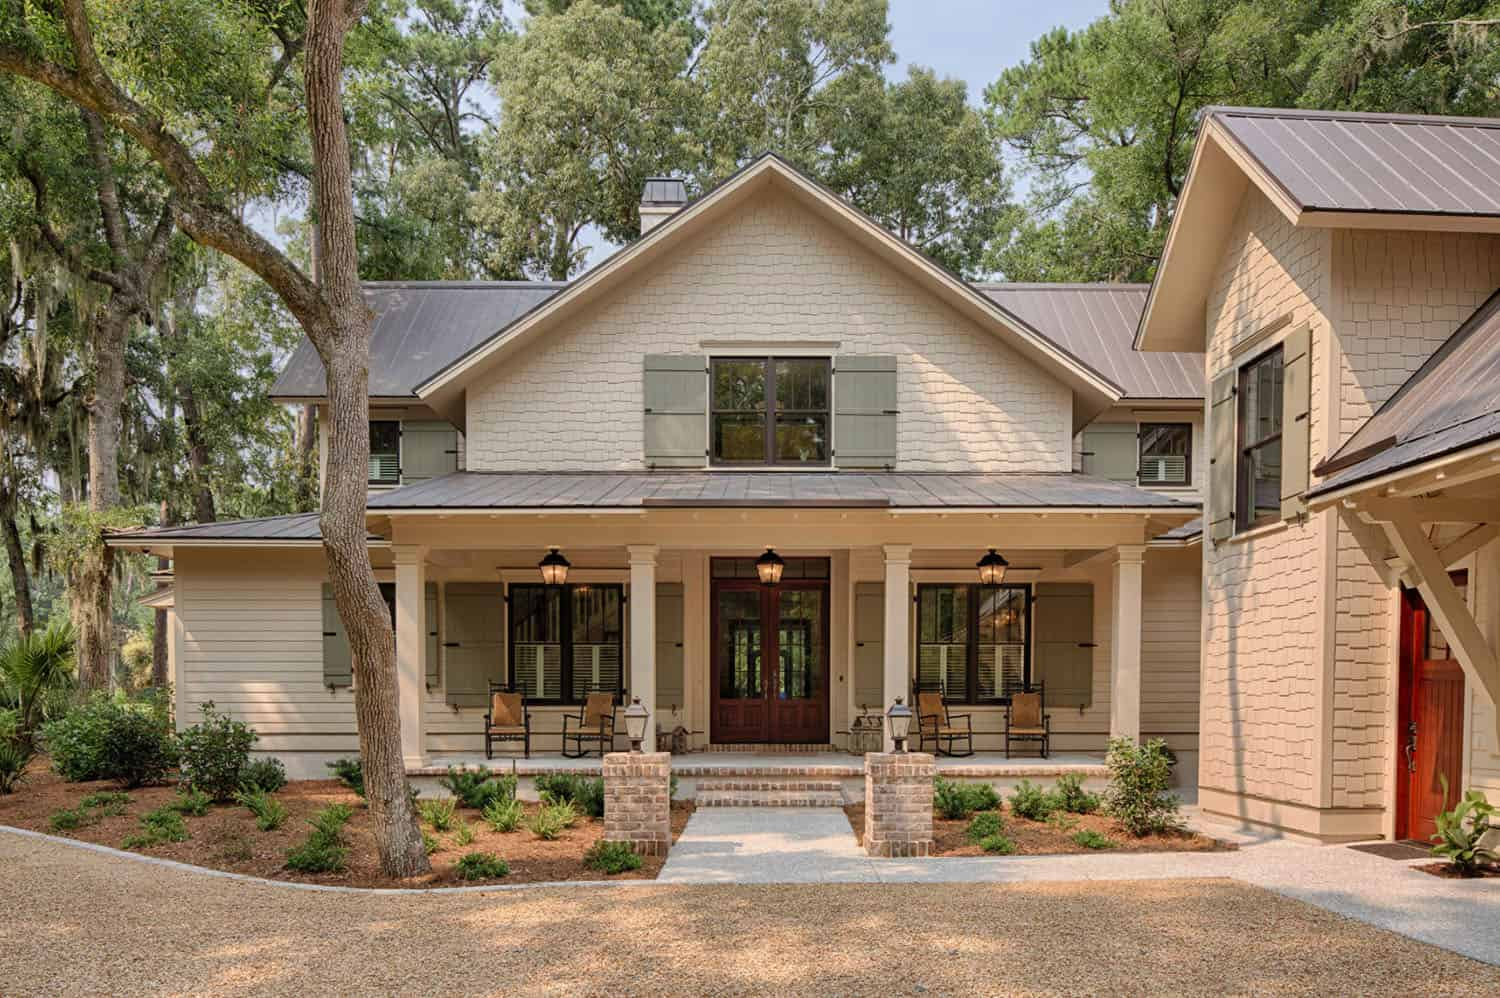 Inside this Low Country farmhouse in South Carolina with stunning details